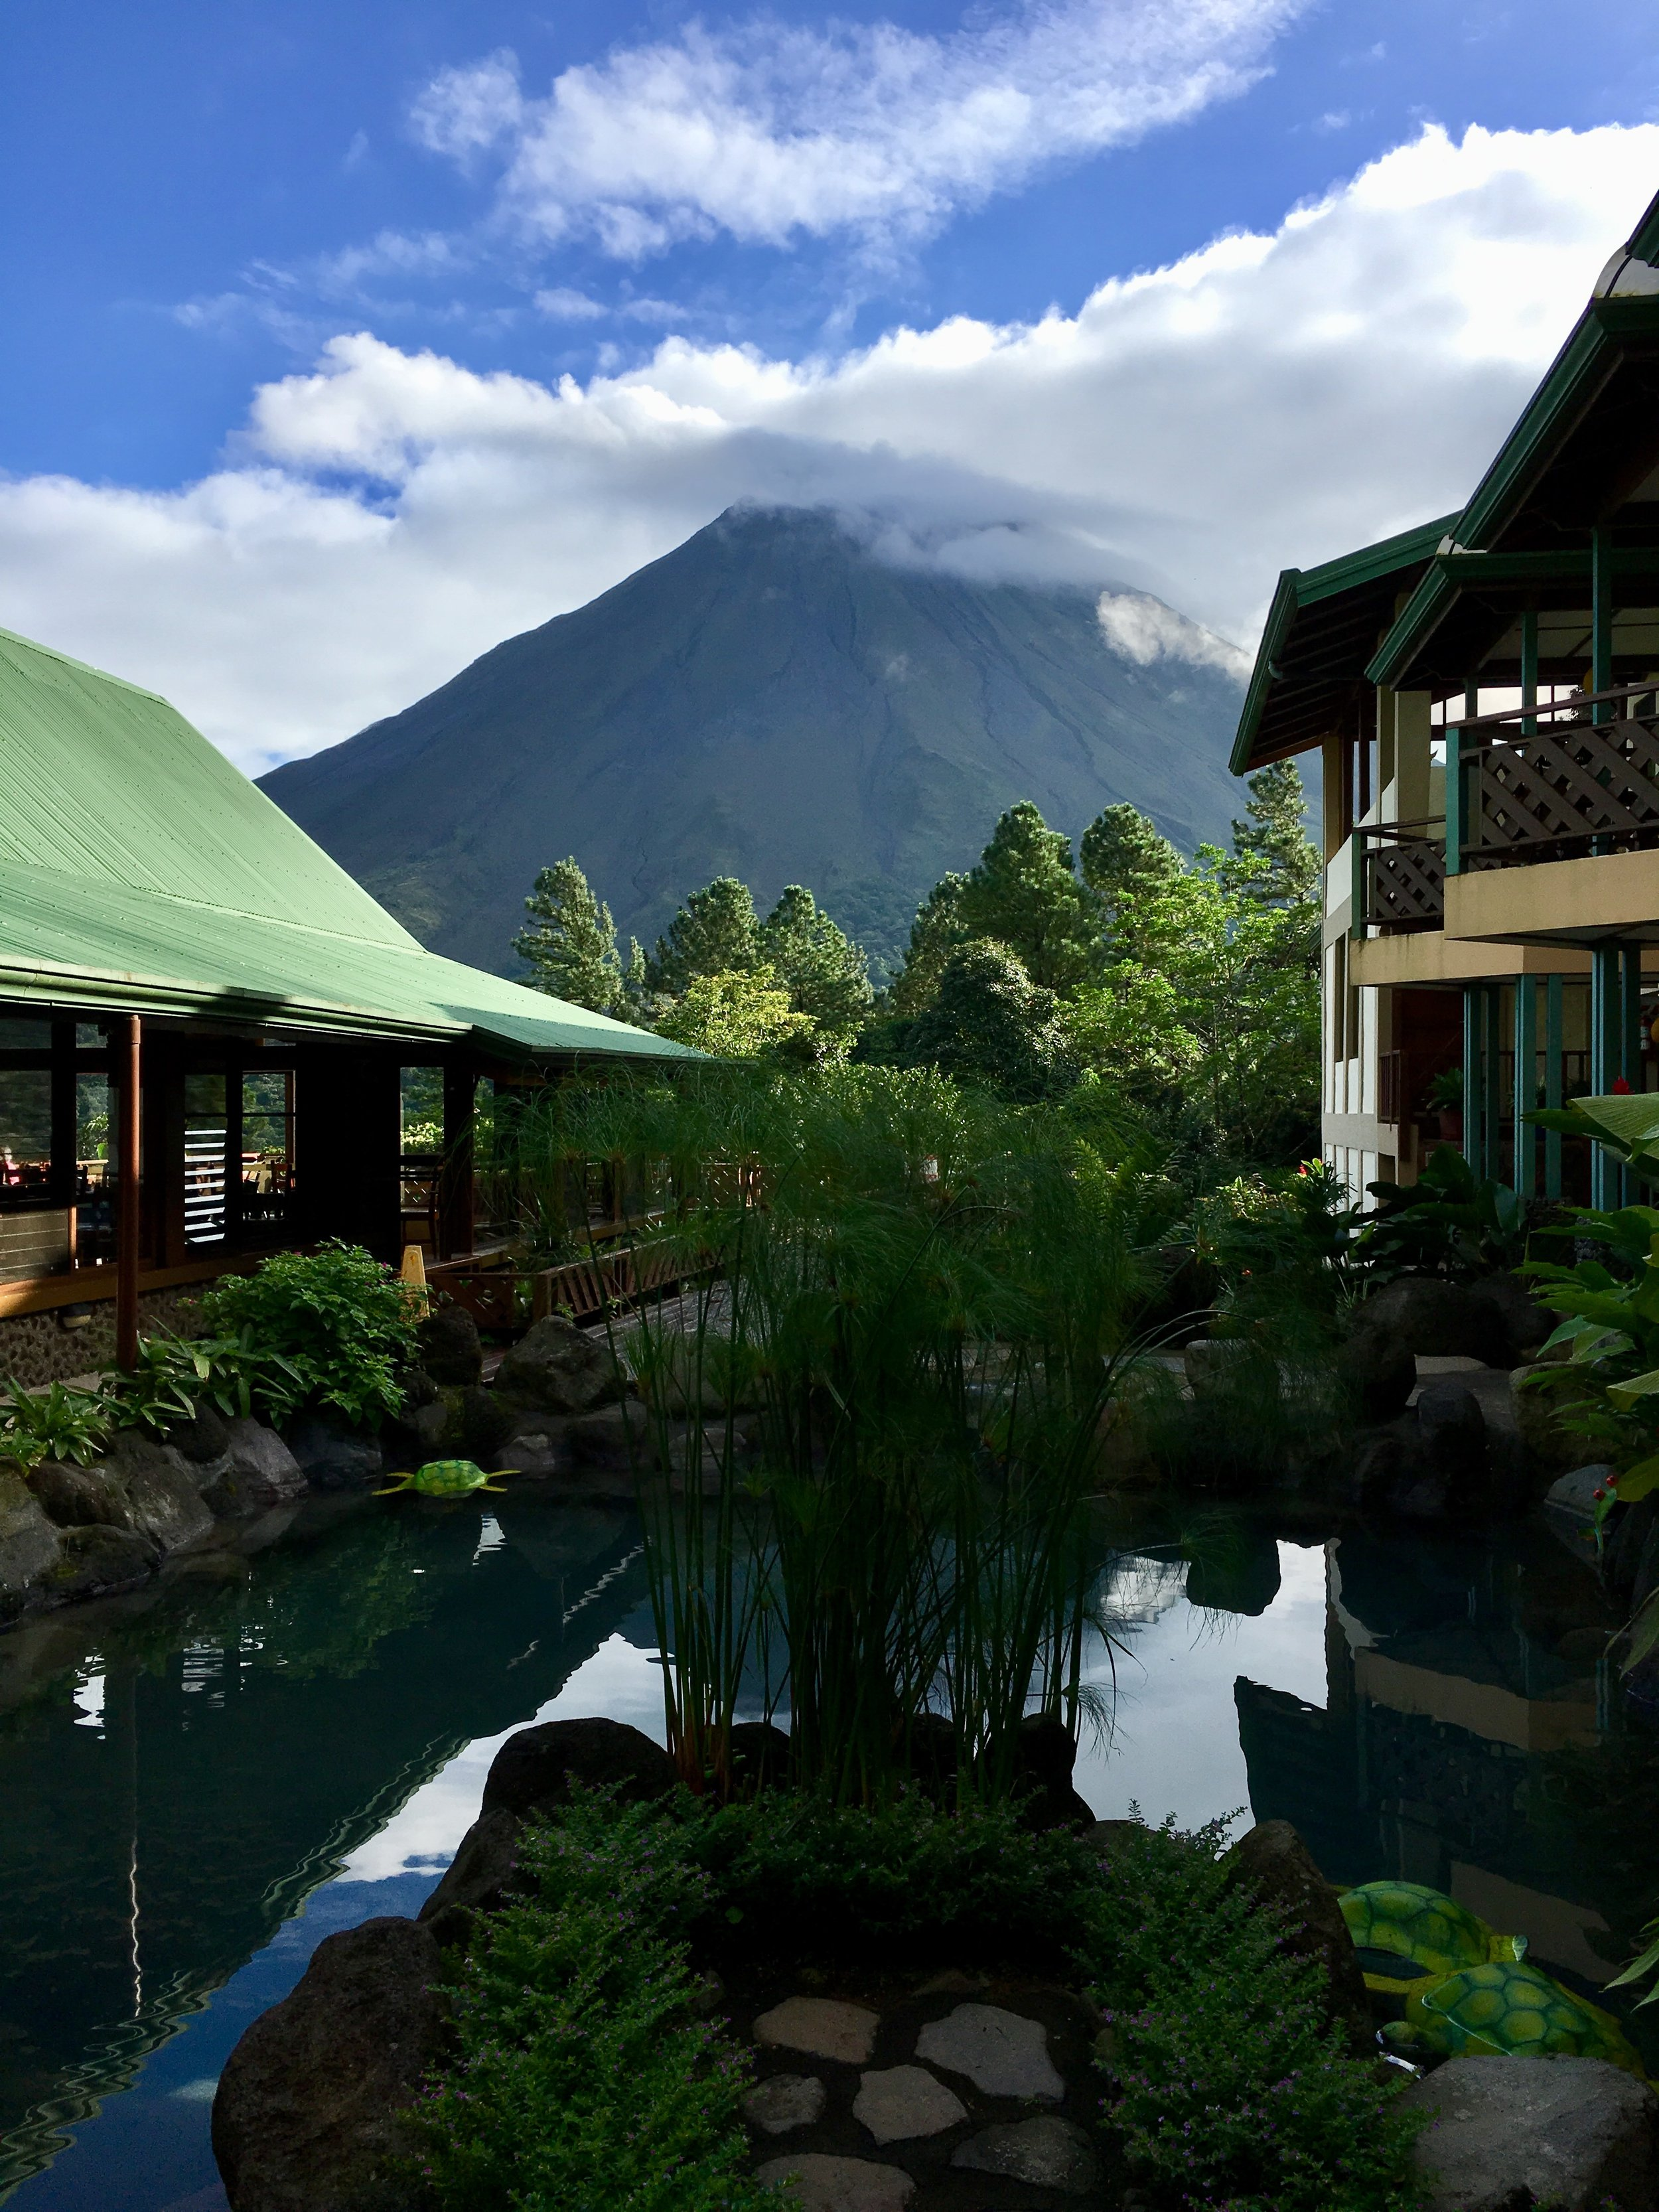 Arenal Volcano as seen from the Lodge